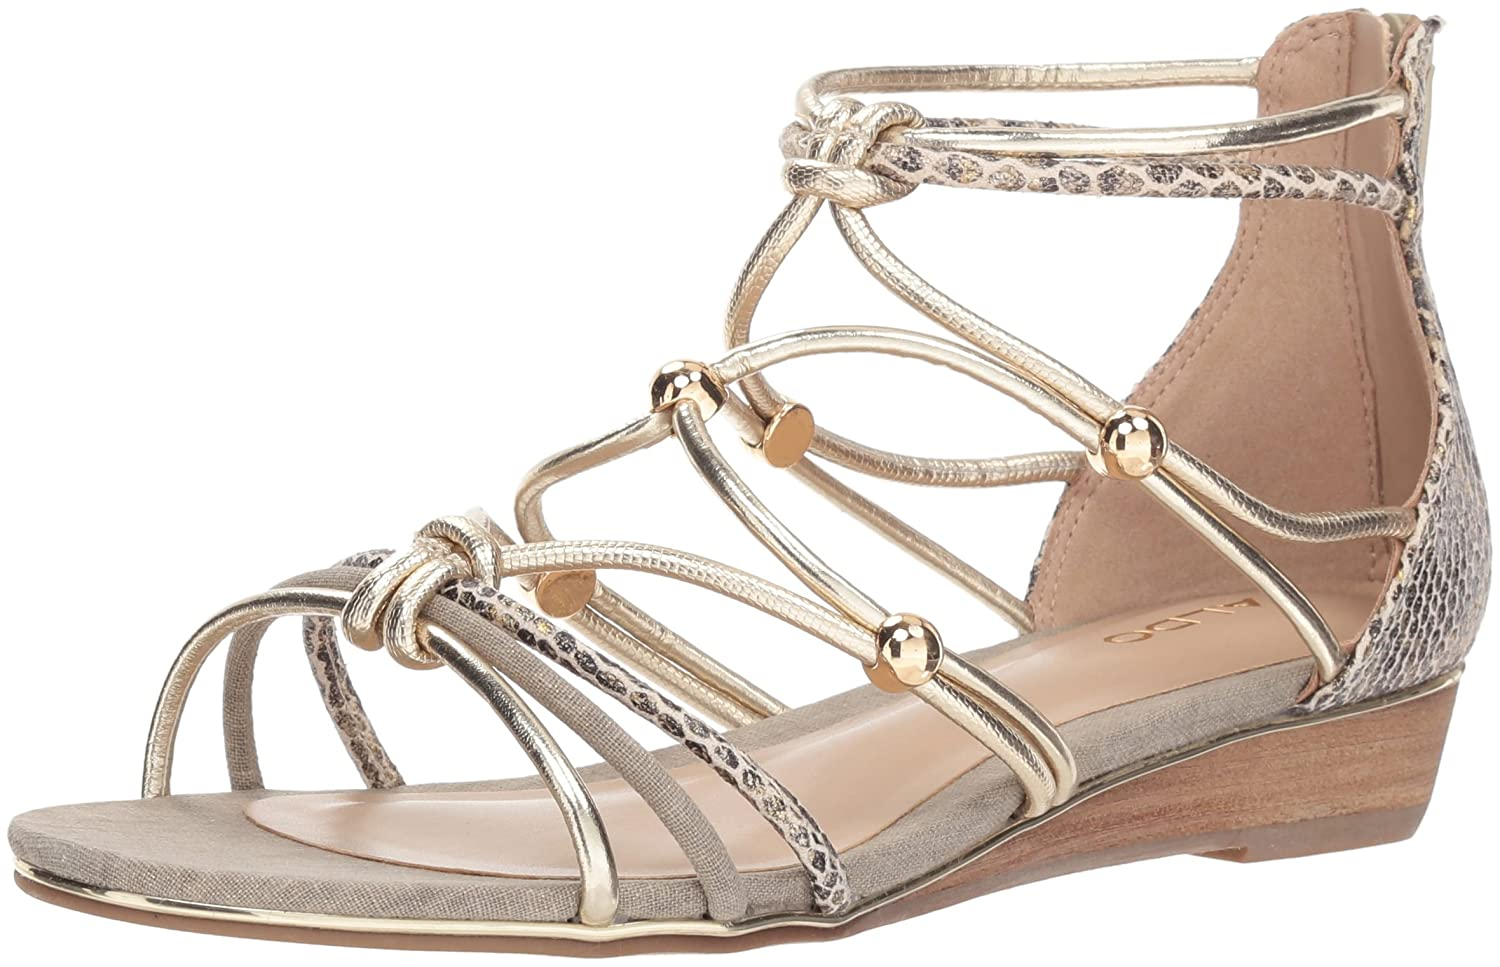 25831cce2f4d Amazon.com  ALDO Women s Muriele Flat Sandal  Shoes